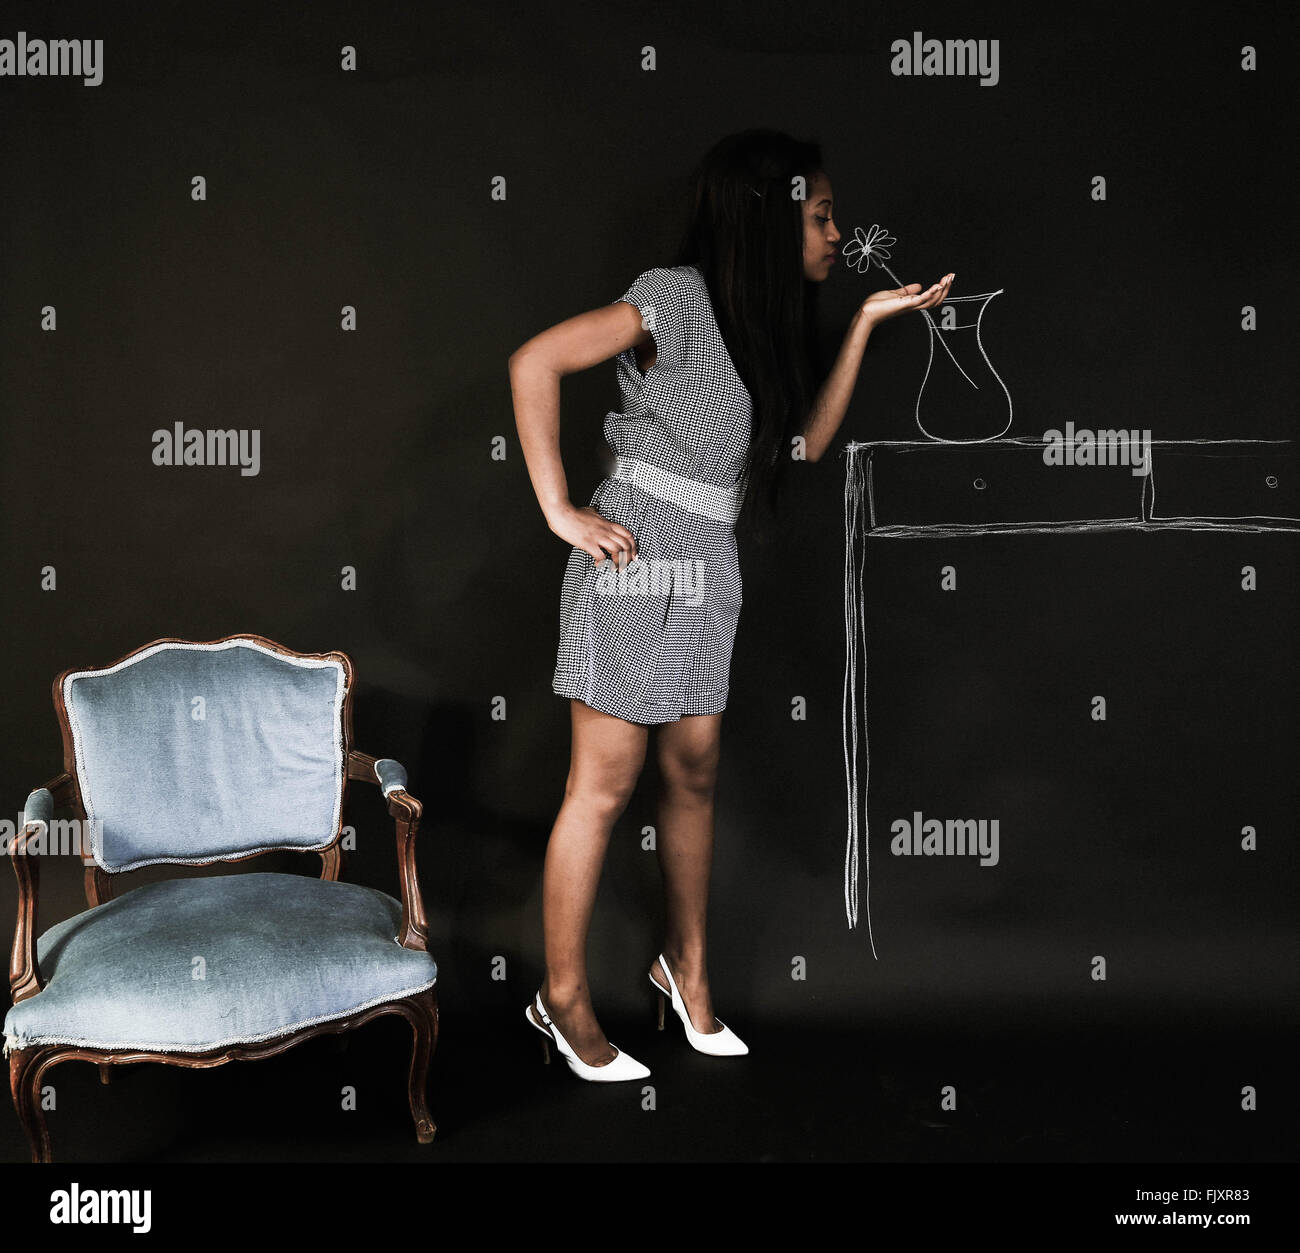 Optical Illusion Of Woman Smelling Flower Drawing On Wall - Stock Image